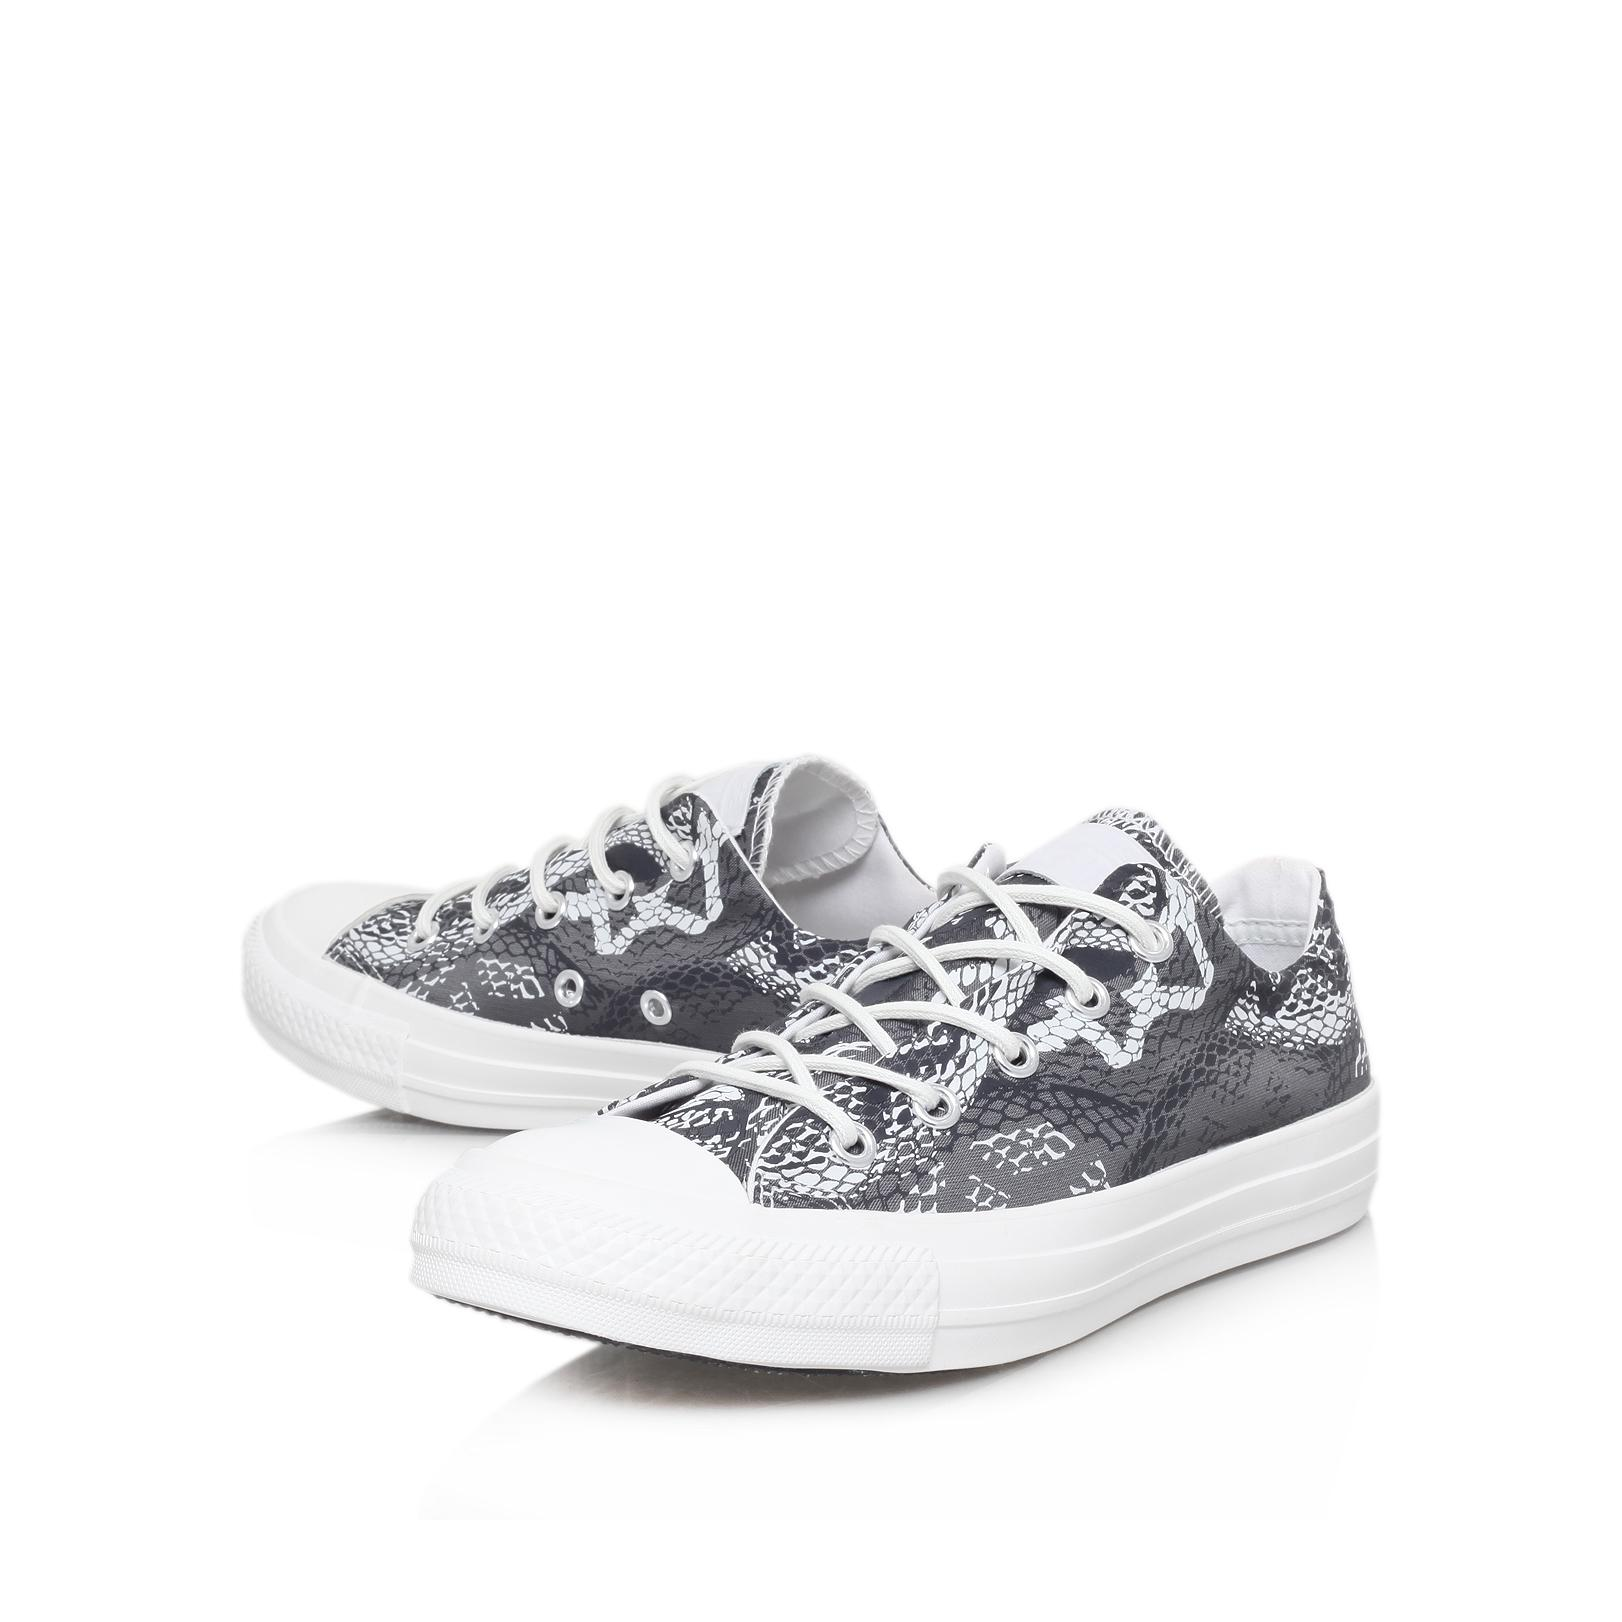 6664644683a2ae Converse Ct Reptile Low in Black - Lyst